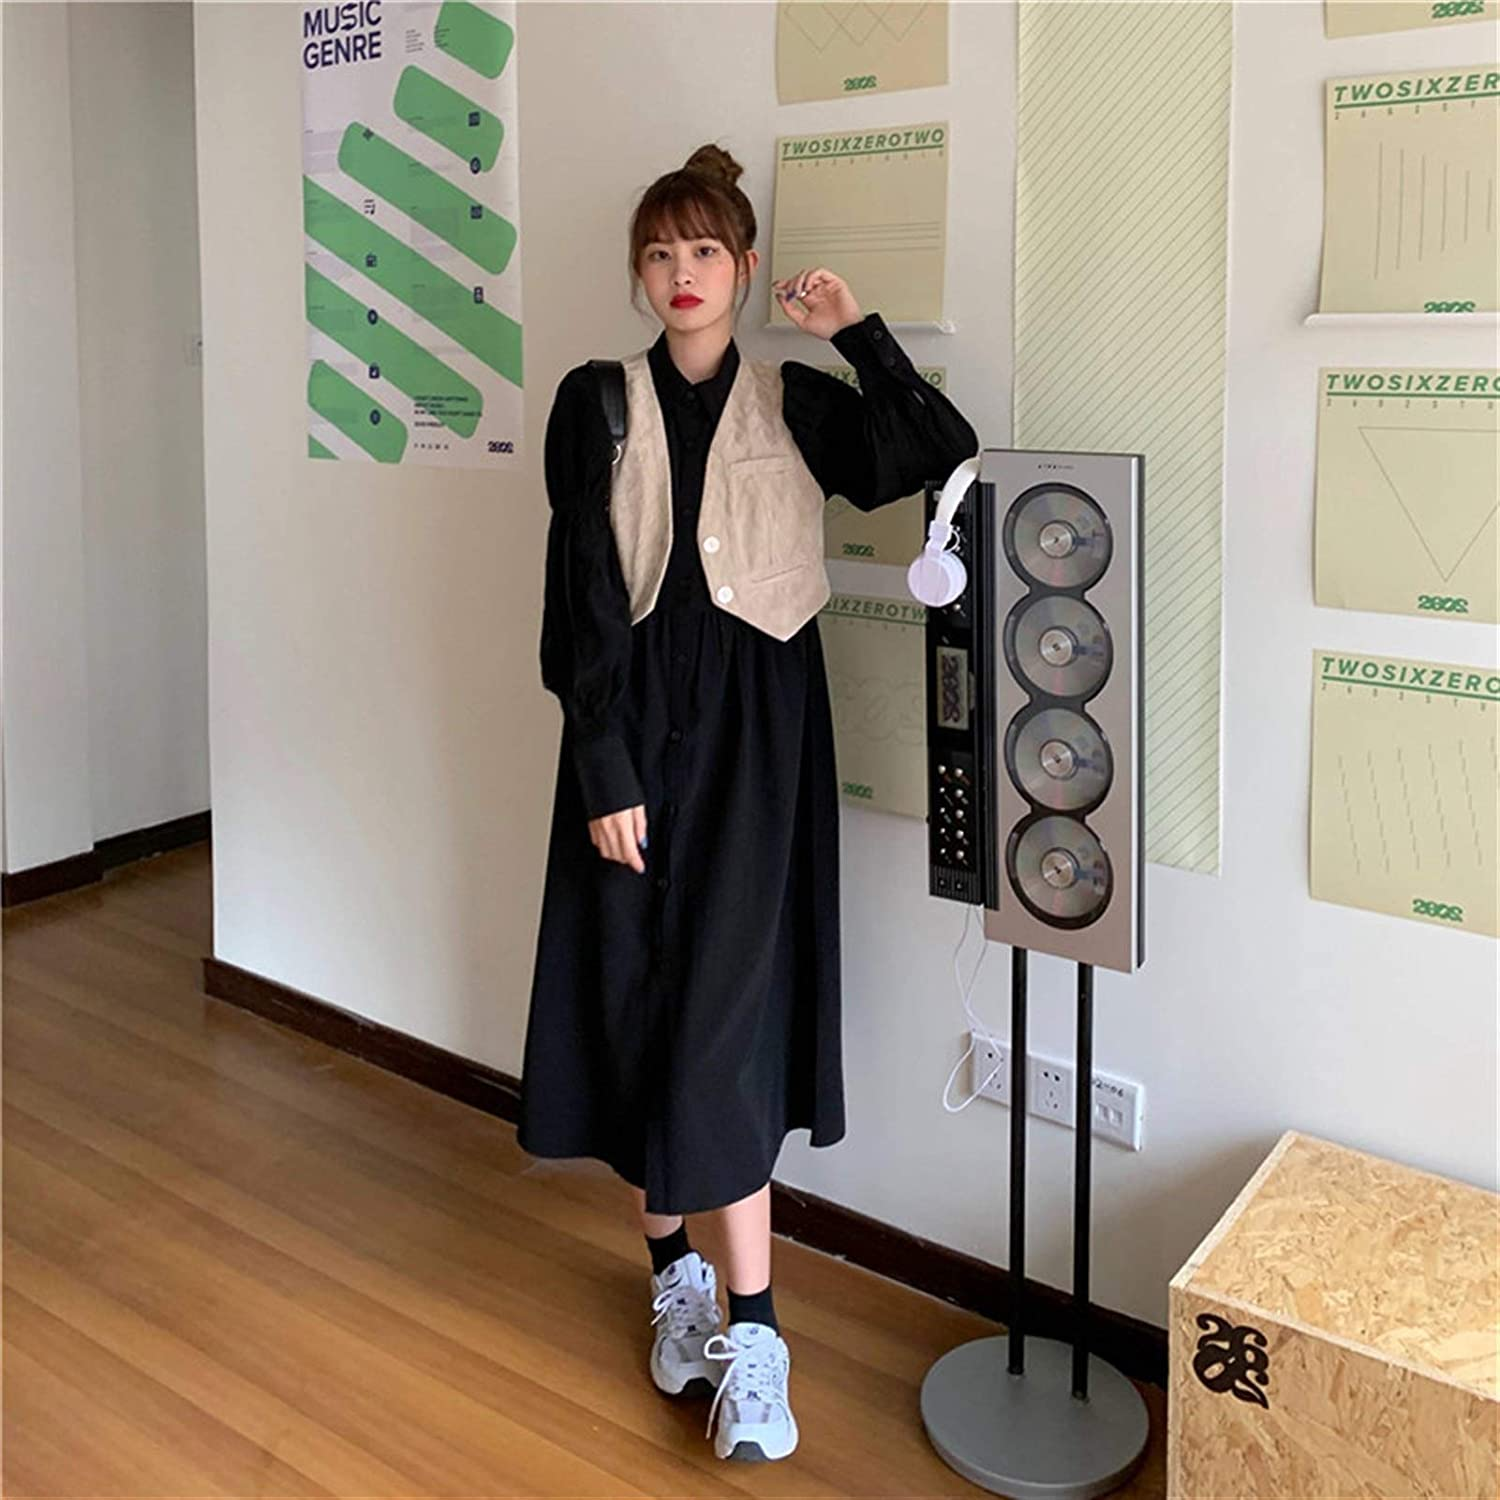 BangHaa Fashion Suit Women 2021 Spring and Autumn New Korean Style Wild Shirt Mid-Length Dress + Vest Two-Piece for Beach Vacation (Color : Black, Size : One Size)